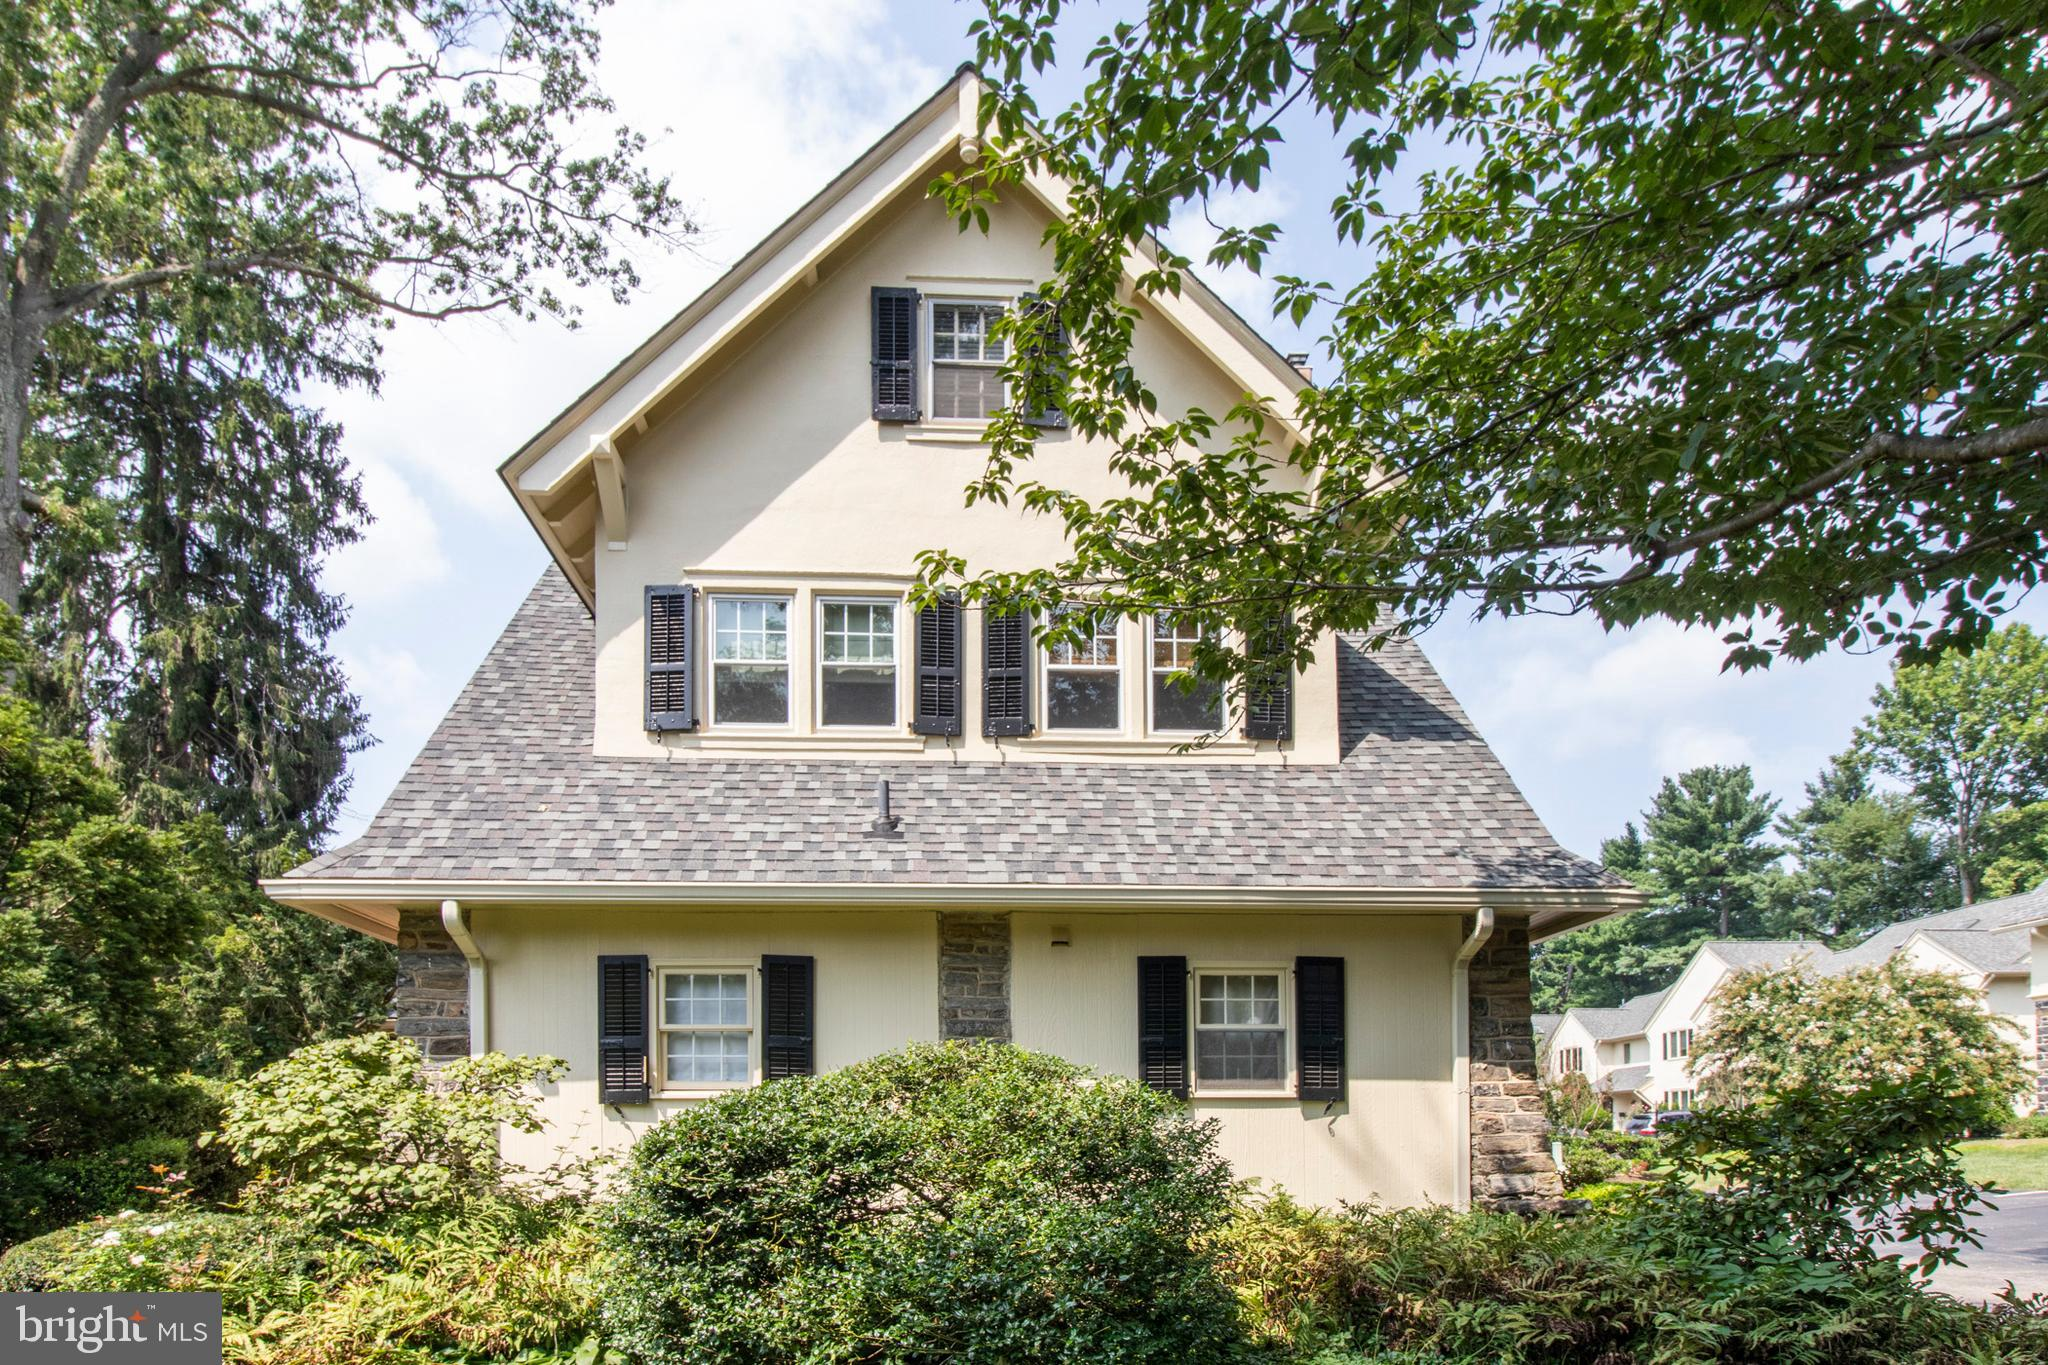 Attention Investors or Owner Occupants, this 2BR, 2BA Penthouse condominium is located in the affluent Bryn Mawr section of the Main Line close to Bryn Mawr Hospital, and in the desirable Radnor School District. It is walking distance to shops, restaurants, and the R5 train line with a walkability score of 82 where most errands can be accomplished on foot. The property offers approximately 1300 sq ft of living space and is full of 1930's charm melded with modernity and style. From the moment you walk through the door, you will feel the comfort and convenience that will make you happy to call this condominium home. You will instantly take notice to the warm hardwood floors and calming natural light throughout this property. Enter the foyer area which leads to an updated kitchen with beautiful white cabinetry, stainless steel appliances, and granite countertops. There is large living area, bonus room which can be used as a library/office, den, or possibly a 3rd bedroom, a private terrace and two nice sized bedrooms with convenient access to the two tile baths. There are two convenient dedicated tenant parking spaces; ample guest parking; private washer/dryer in the unit; extra storage in the basement; and so much more. You really must see this home in person to feel the intimacy and all the special features of both the property and the Montrose Square Community. This condo is competitively priced under market value. Pet Friendly! One authorized dog or cat is allowed.